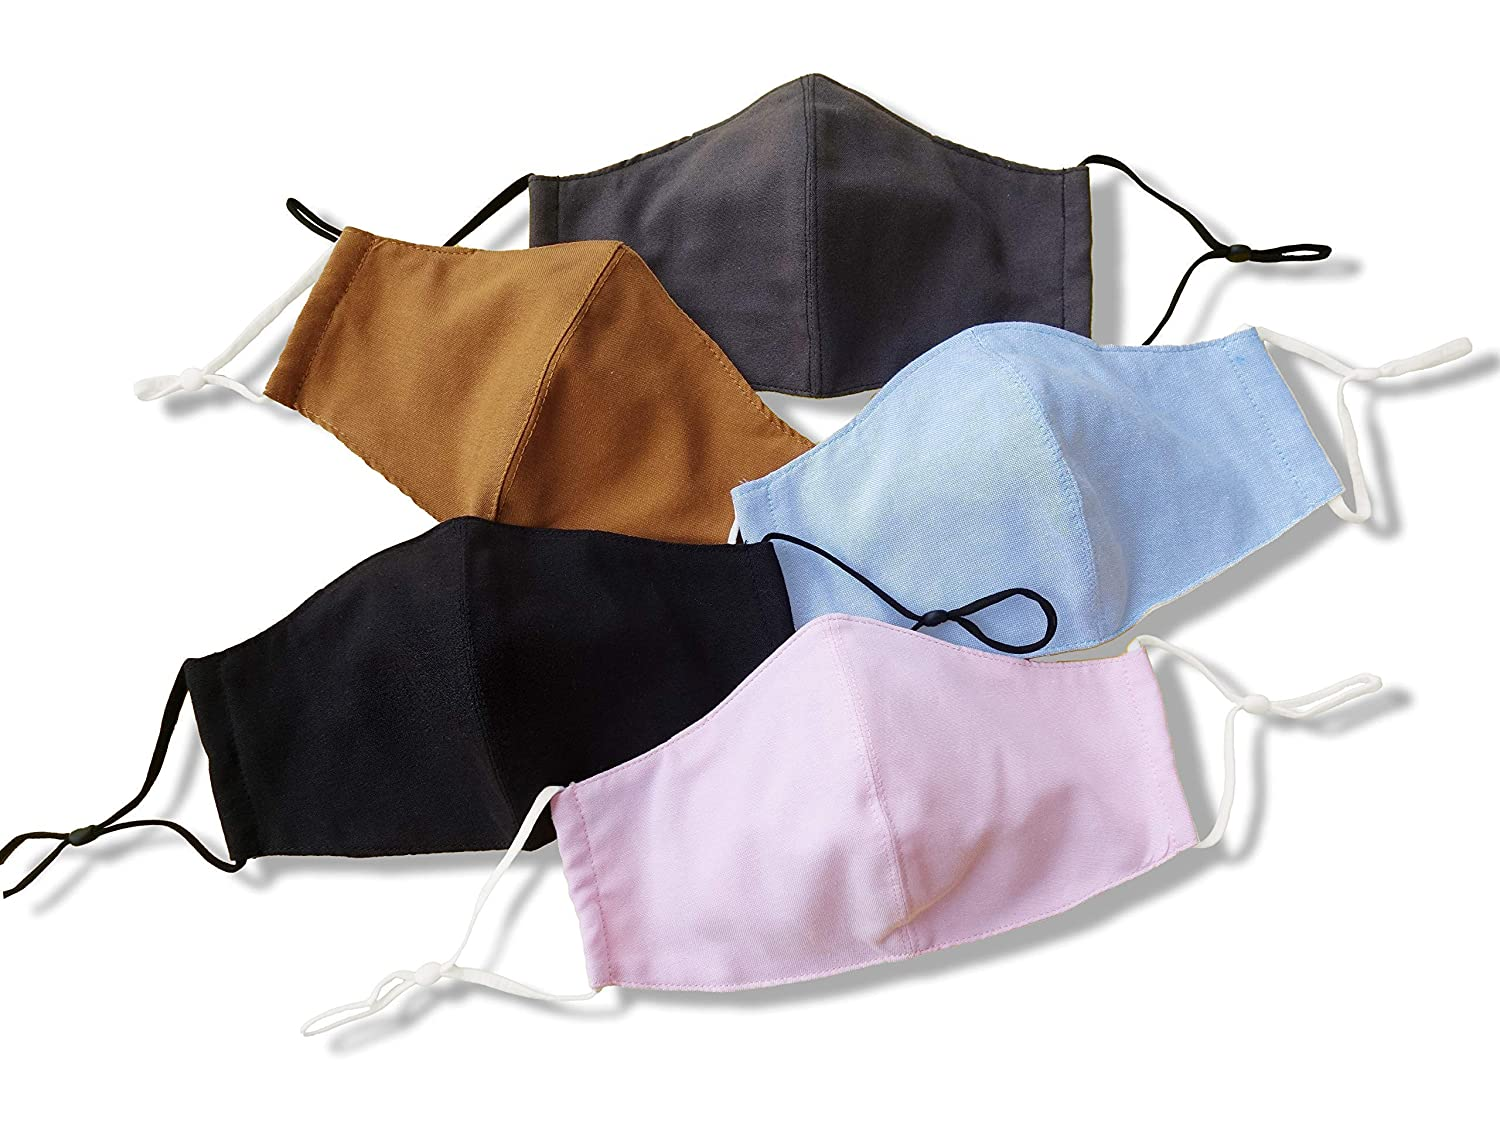 Face Masks Reusable Handmade Waterproof USA made Cotton Max 54% OFF Ranking TOP5 in with